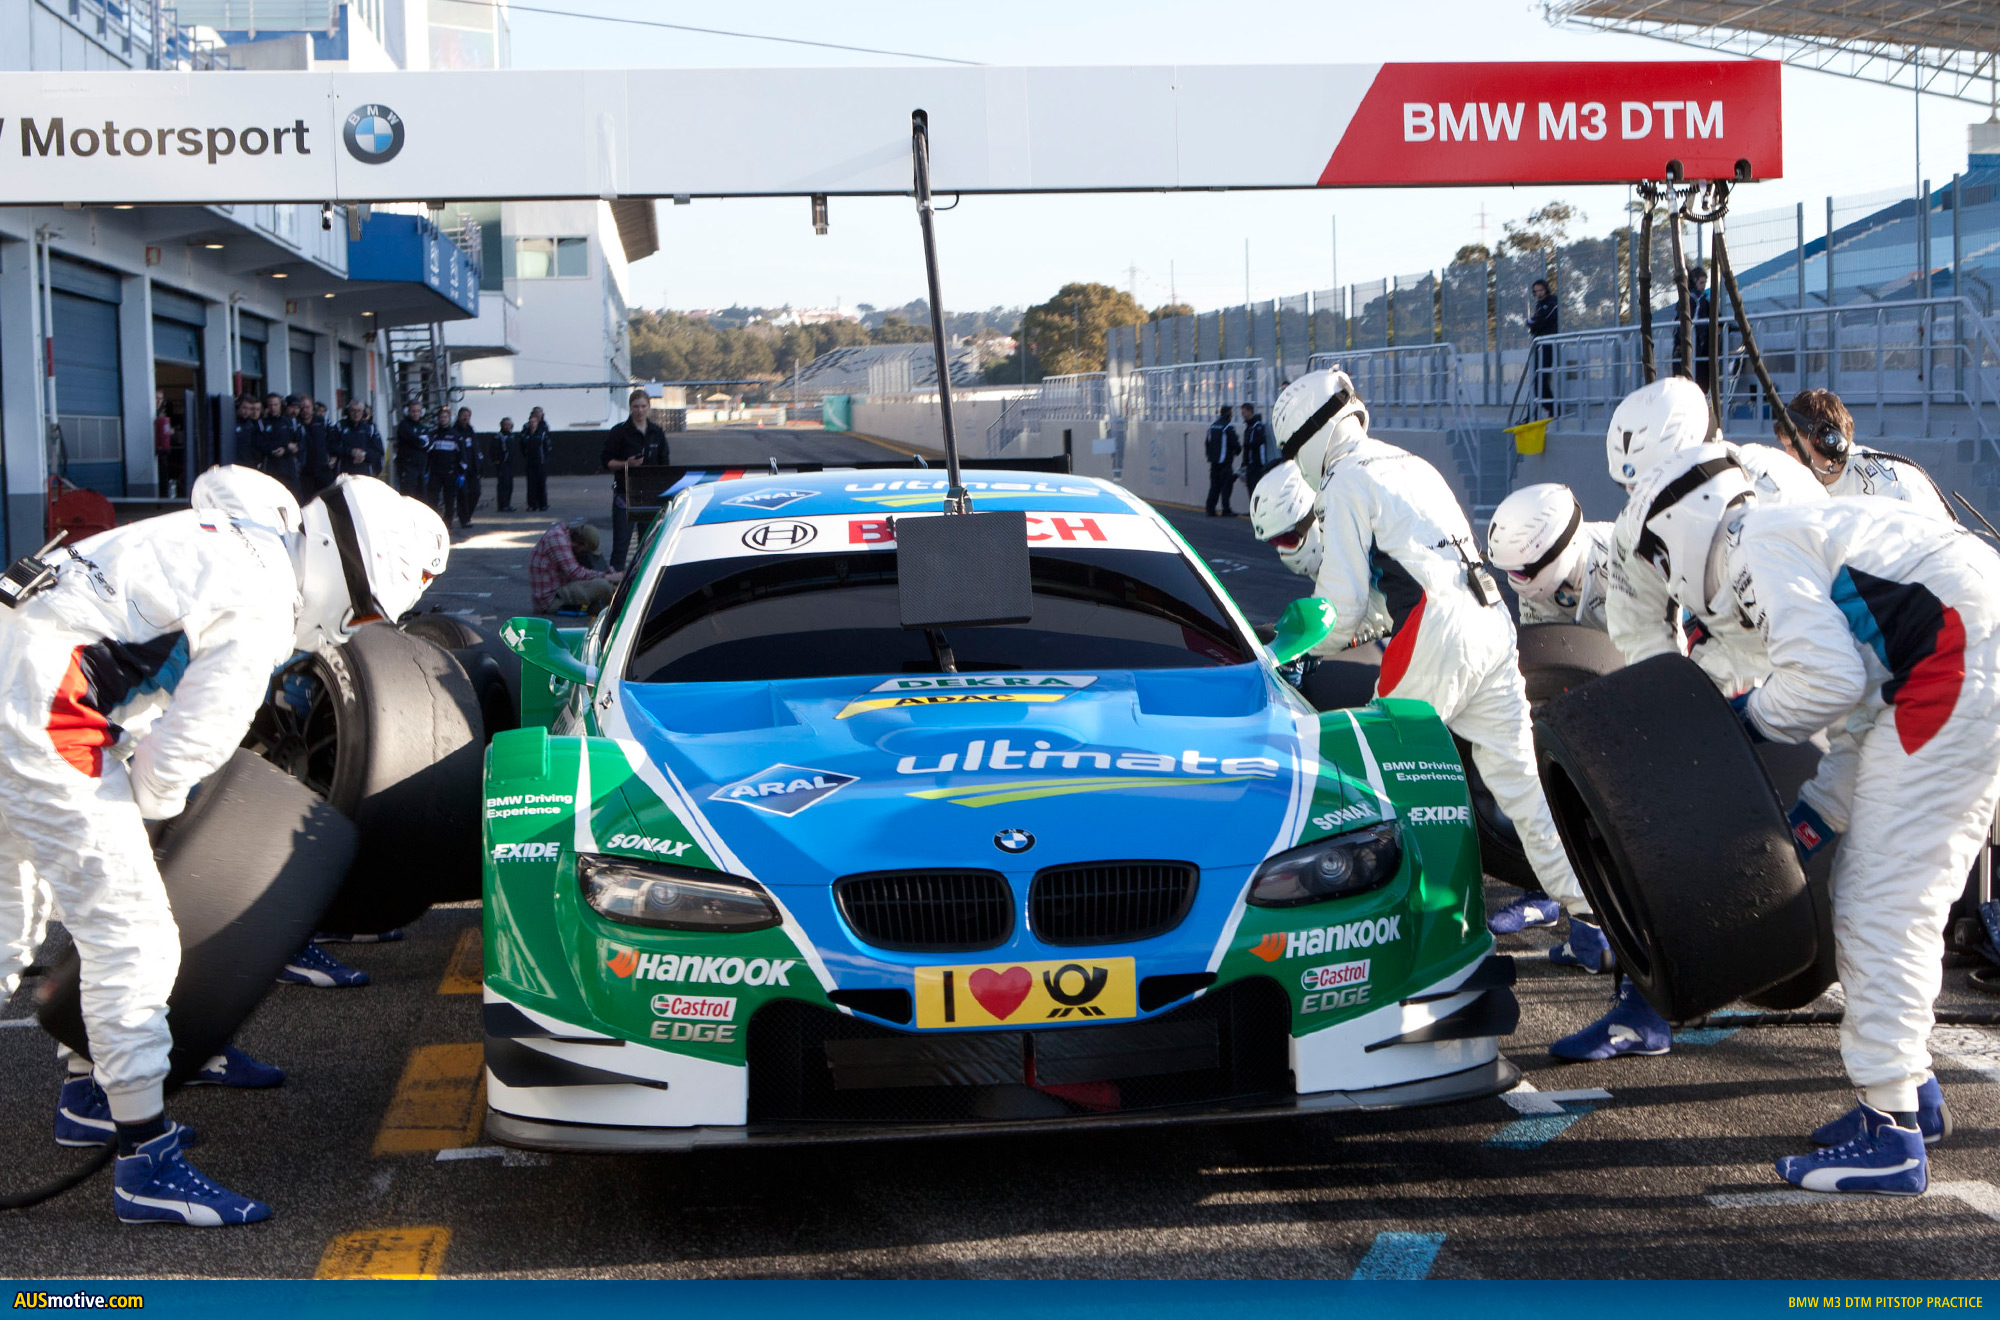 BMW-M3-DTM-pitstop-practice-04